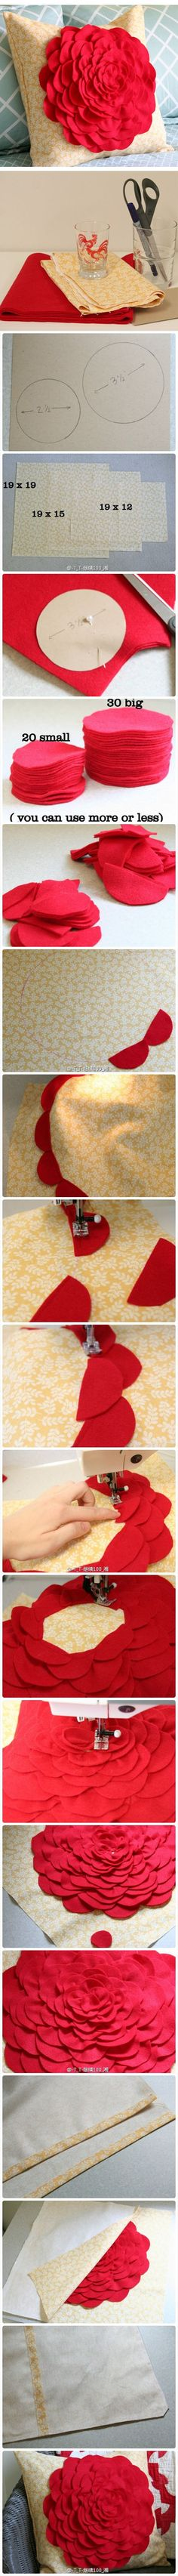 Flower Pillow Tutorial sewing machines, craft, living rooms, fabric flowers, pillow covers, throw pillows, flower tutorial, felt flowers, diy pillows